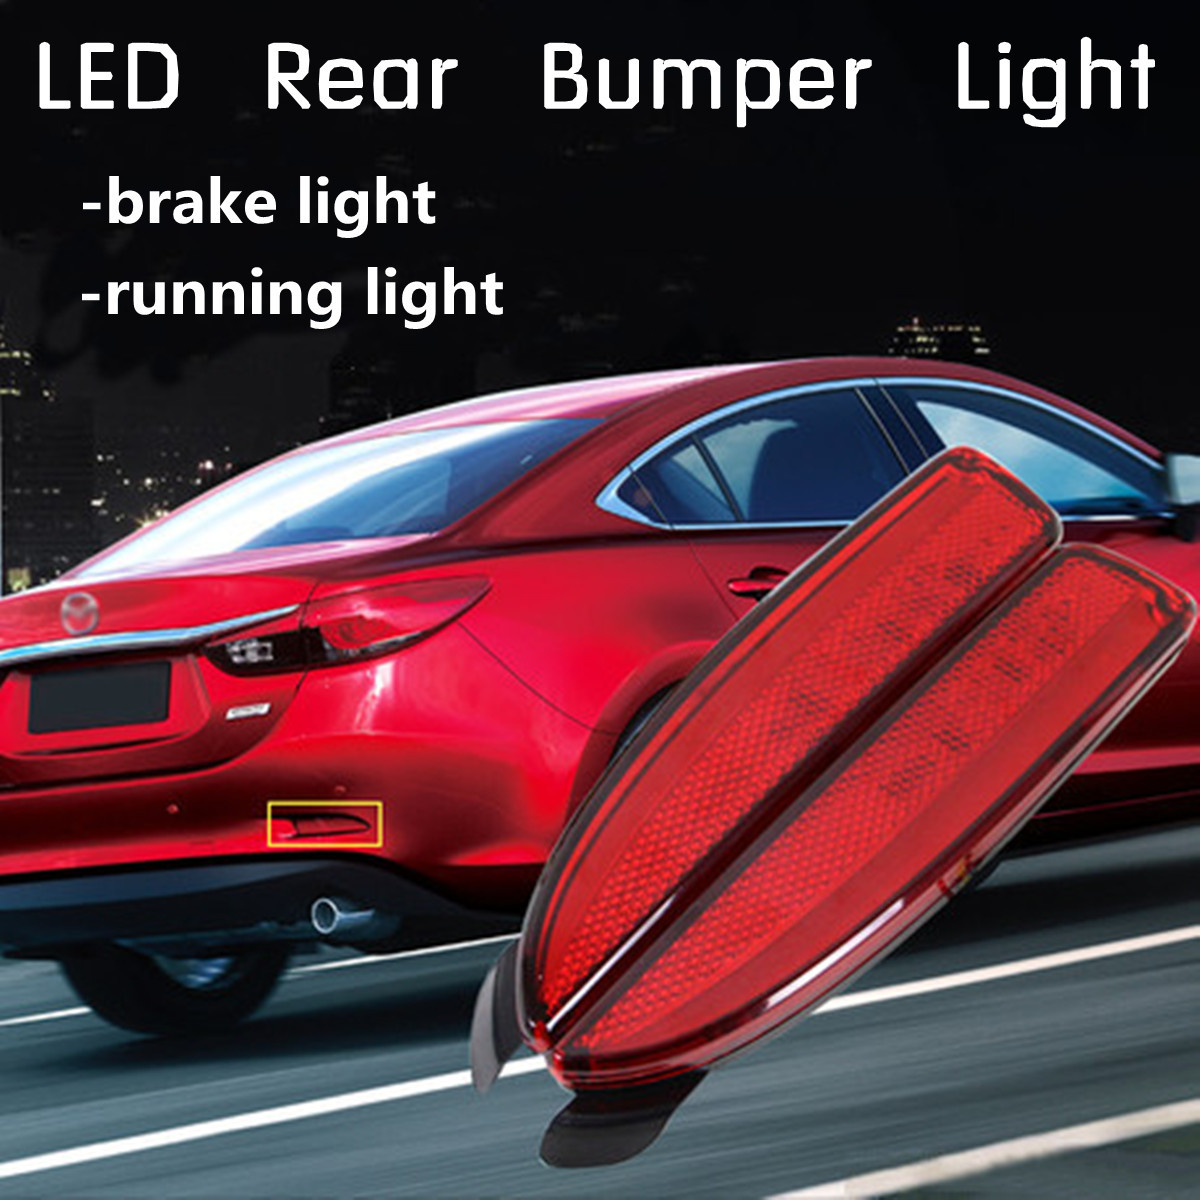 2Pcs <font><b>LED</b></font> Rear Bumper Reflector <font><b>Tail</b></font> Brake Stop Running <font><b>Light</b></font> For <font><b>Mazda</b></font> <font><b>6</b></font> ATENZA 2014-2016 image